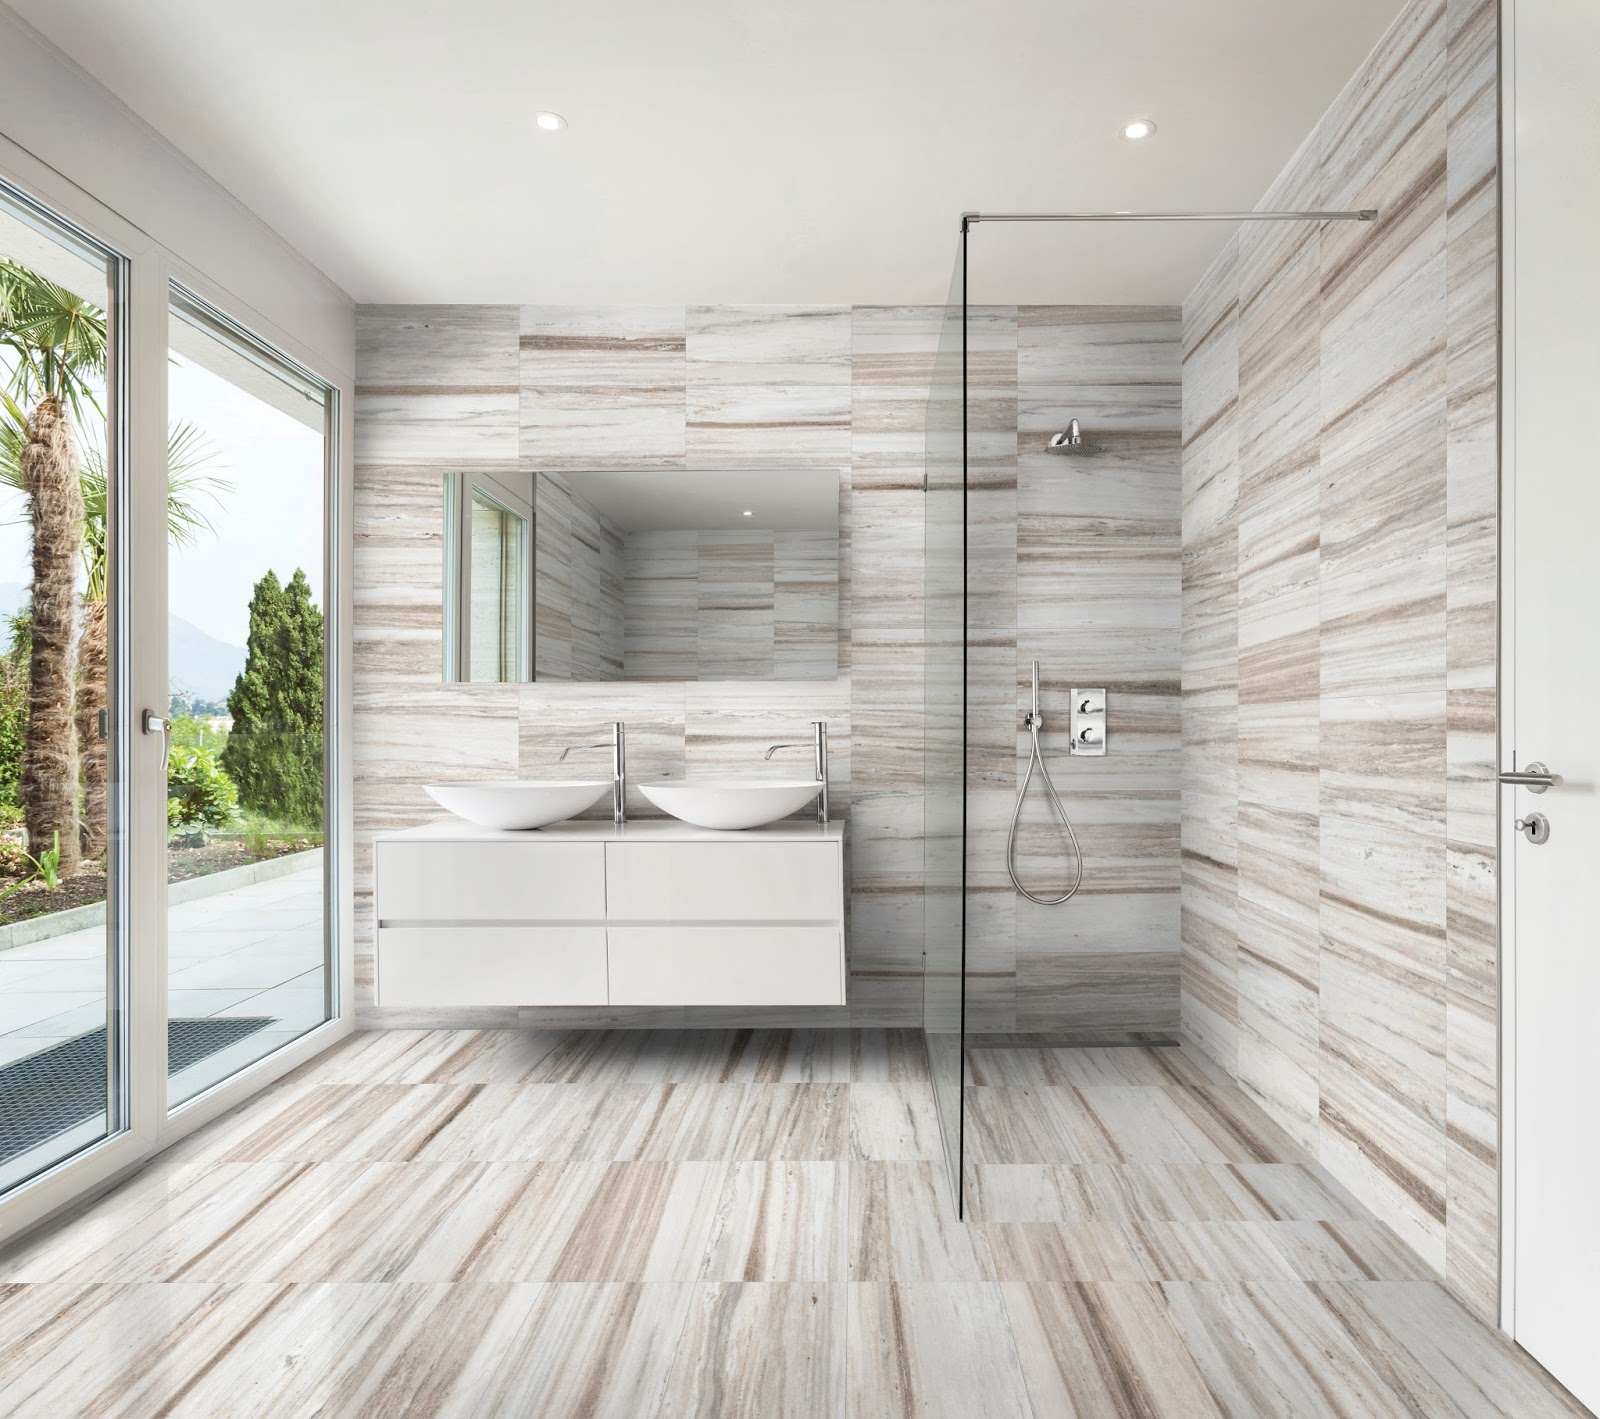 ISC Surfaces: Marvelous Marble Natural Stones